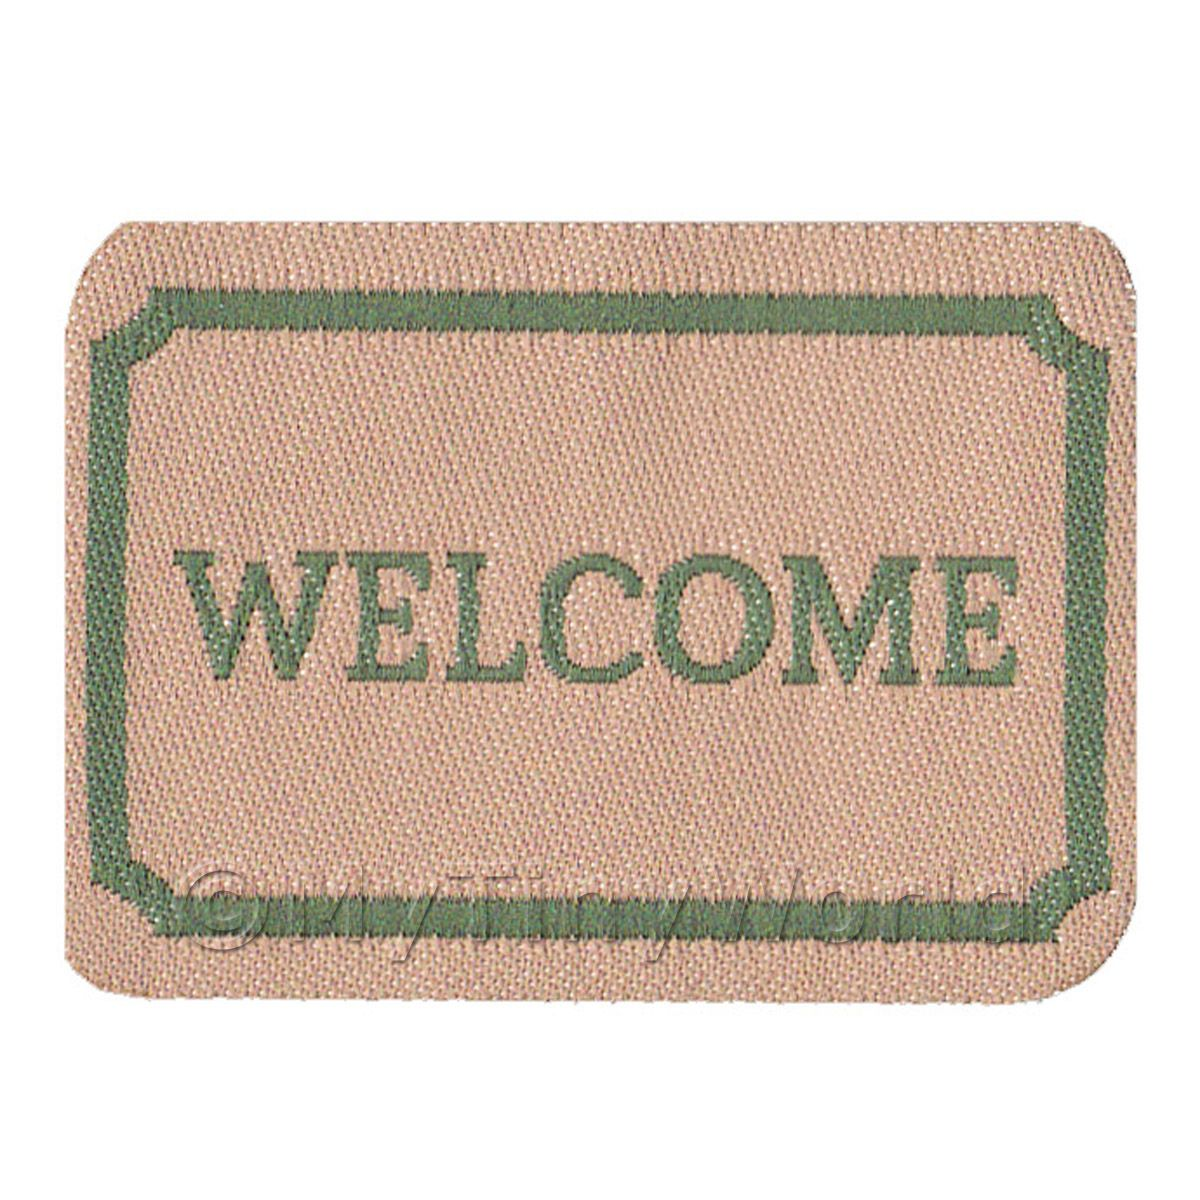 mats doormat welcome wikipedia wiki mat